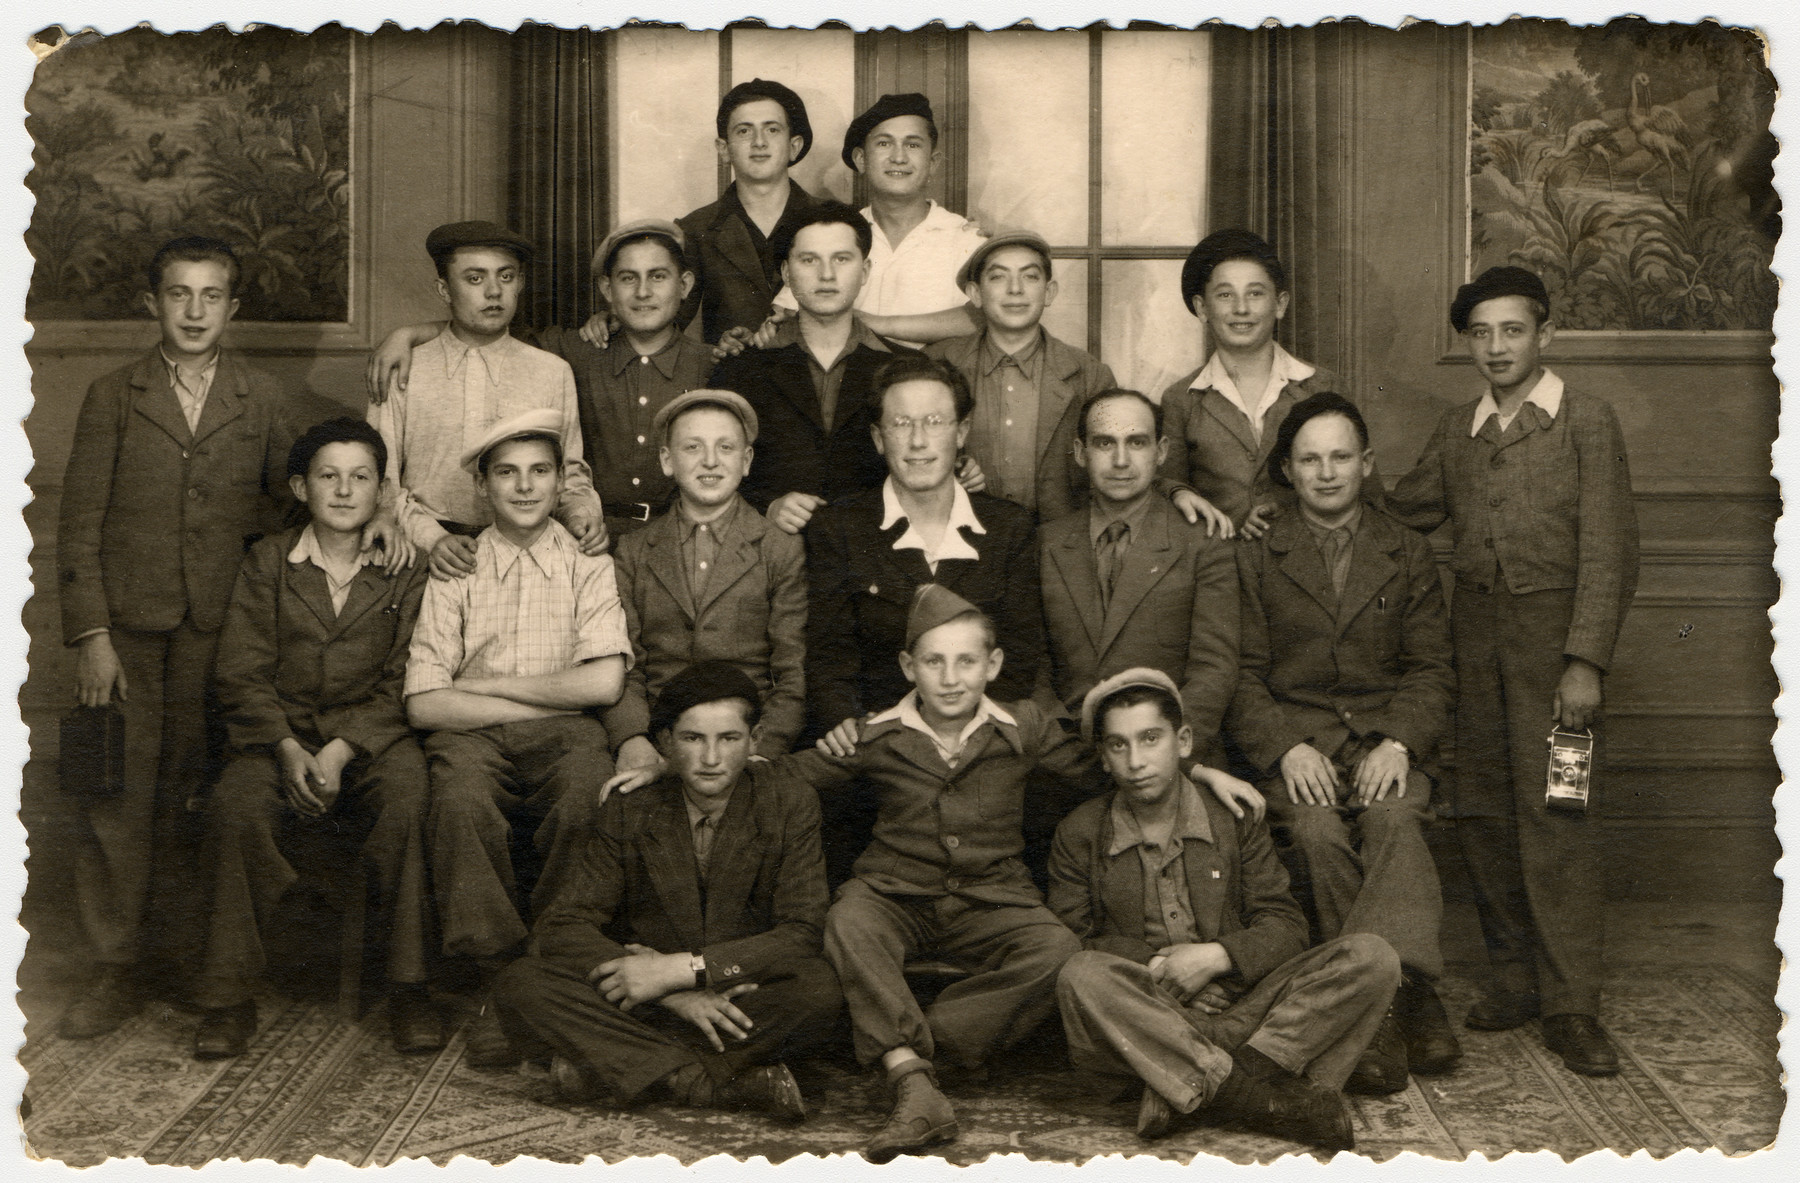 Group portrait of Jewish youth in the Taverny children's home, an OSE home for religious child survivors.  Among those pictured is the donor Jakob Rybsztajn standing on the far right, and Jakub Finelsztajn seated in the front center.